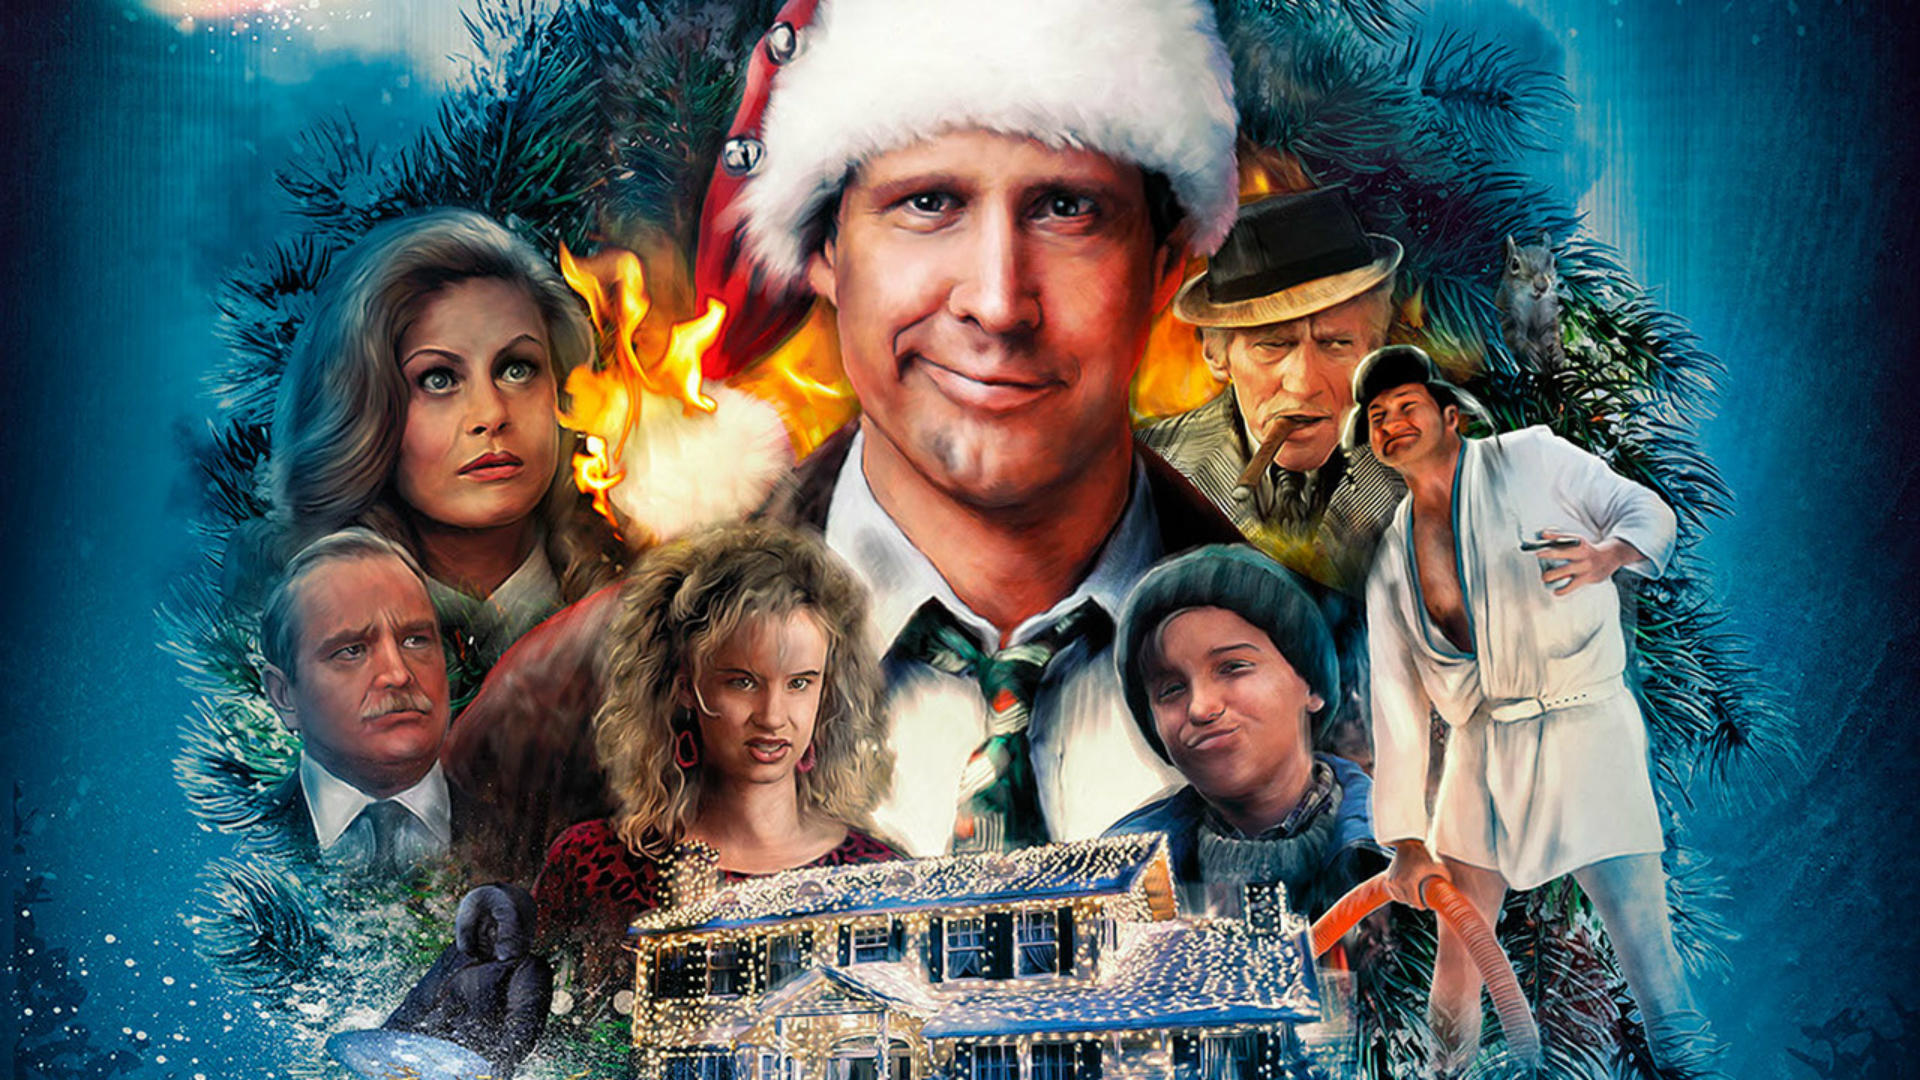 National Lampoon's Christmas Vacation Backgrounds, Compatible - PC, Mobile, Gadgets| 1920x1080 px